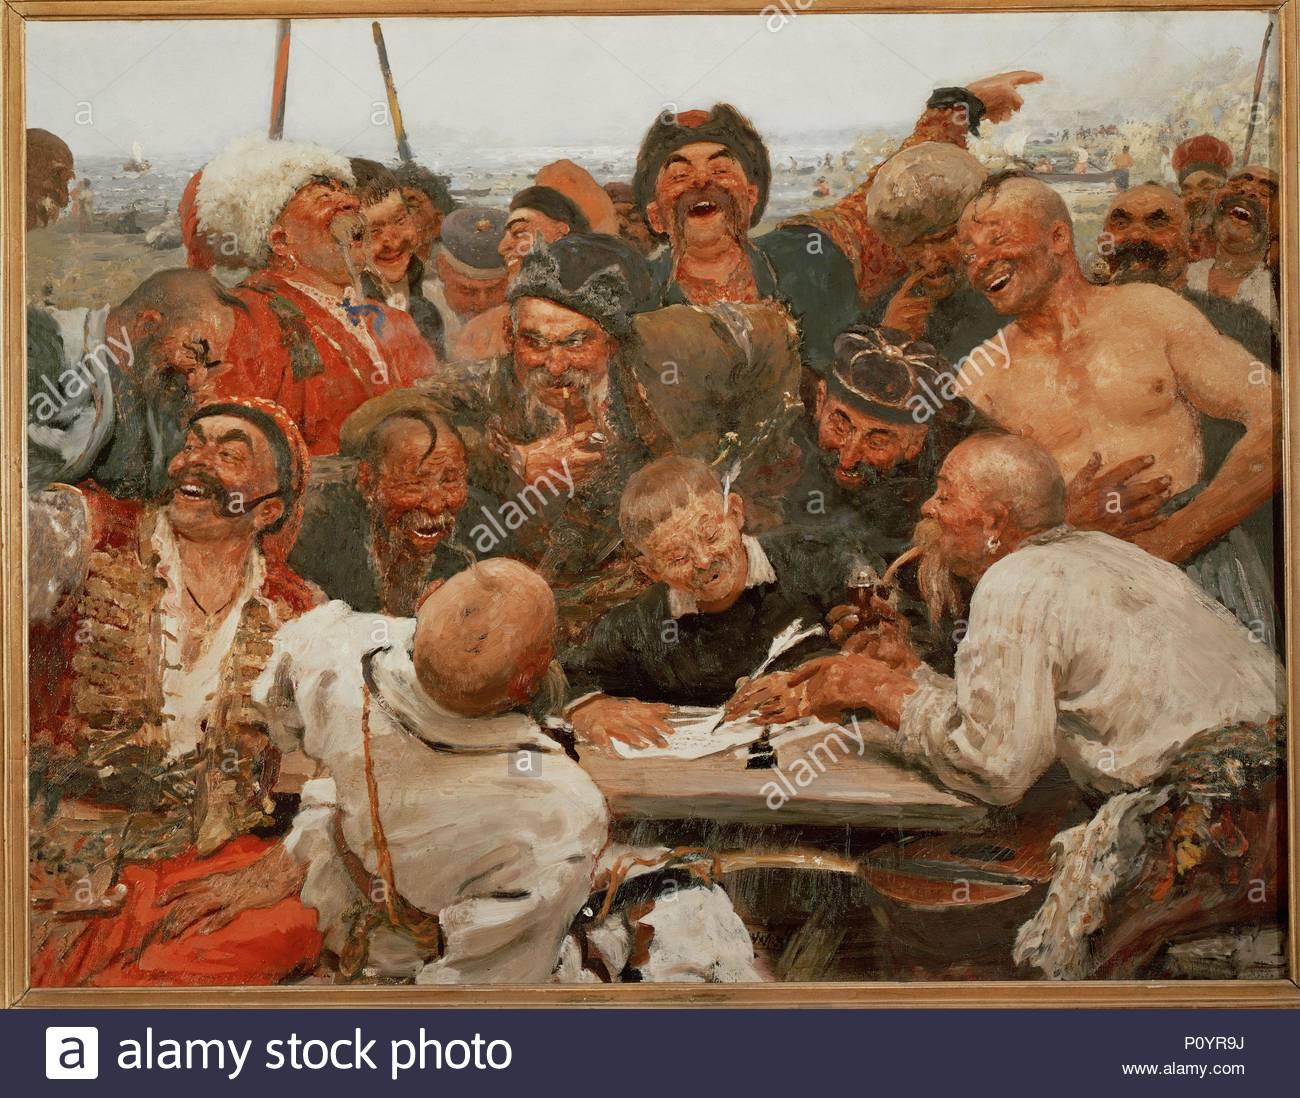 The zaporozhye cossacks write a mocking letter to the turkish sultan the zaporozhye cossacks write a mocking letter to the turkish sultan 1880 1881 oil sketch for the painting in the russian state museum expocarfo Images